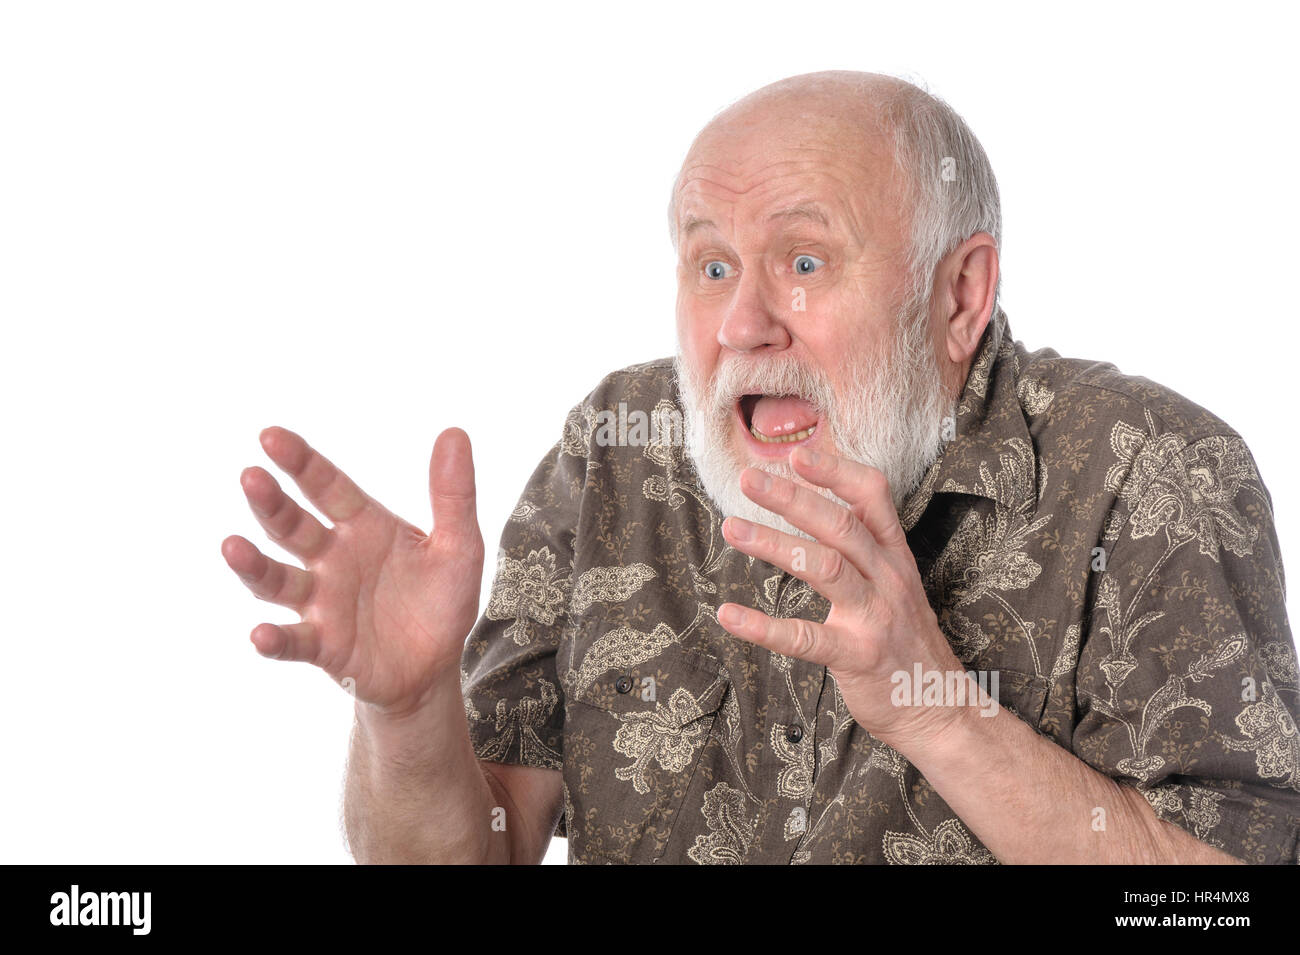 Shocked senior man with grimace of fear, isolated on white - Stock Image